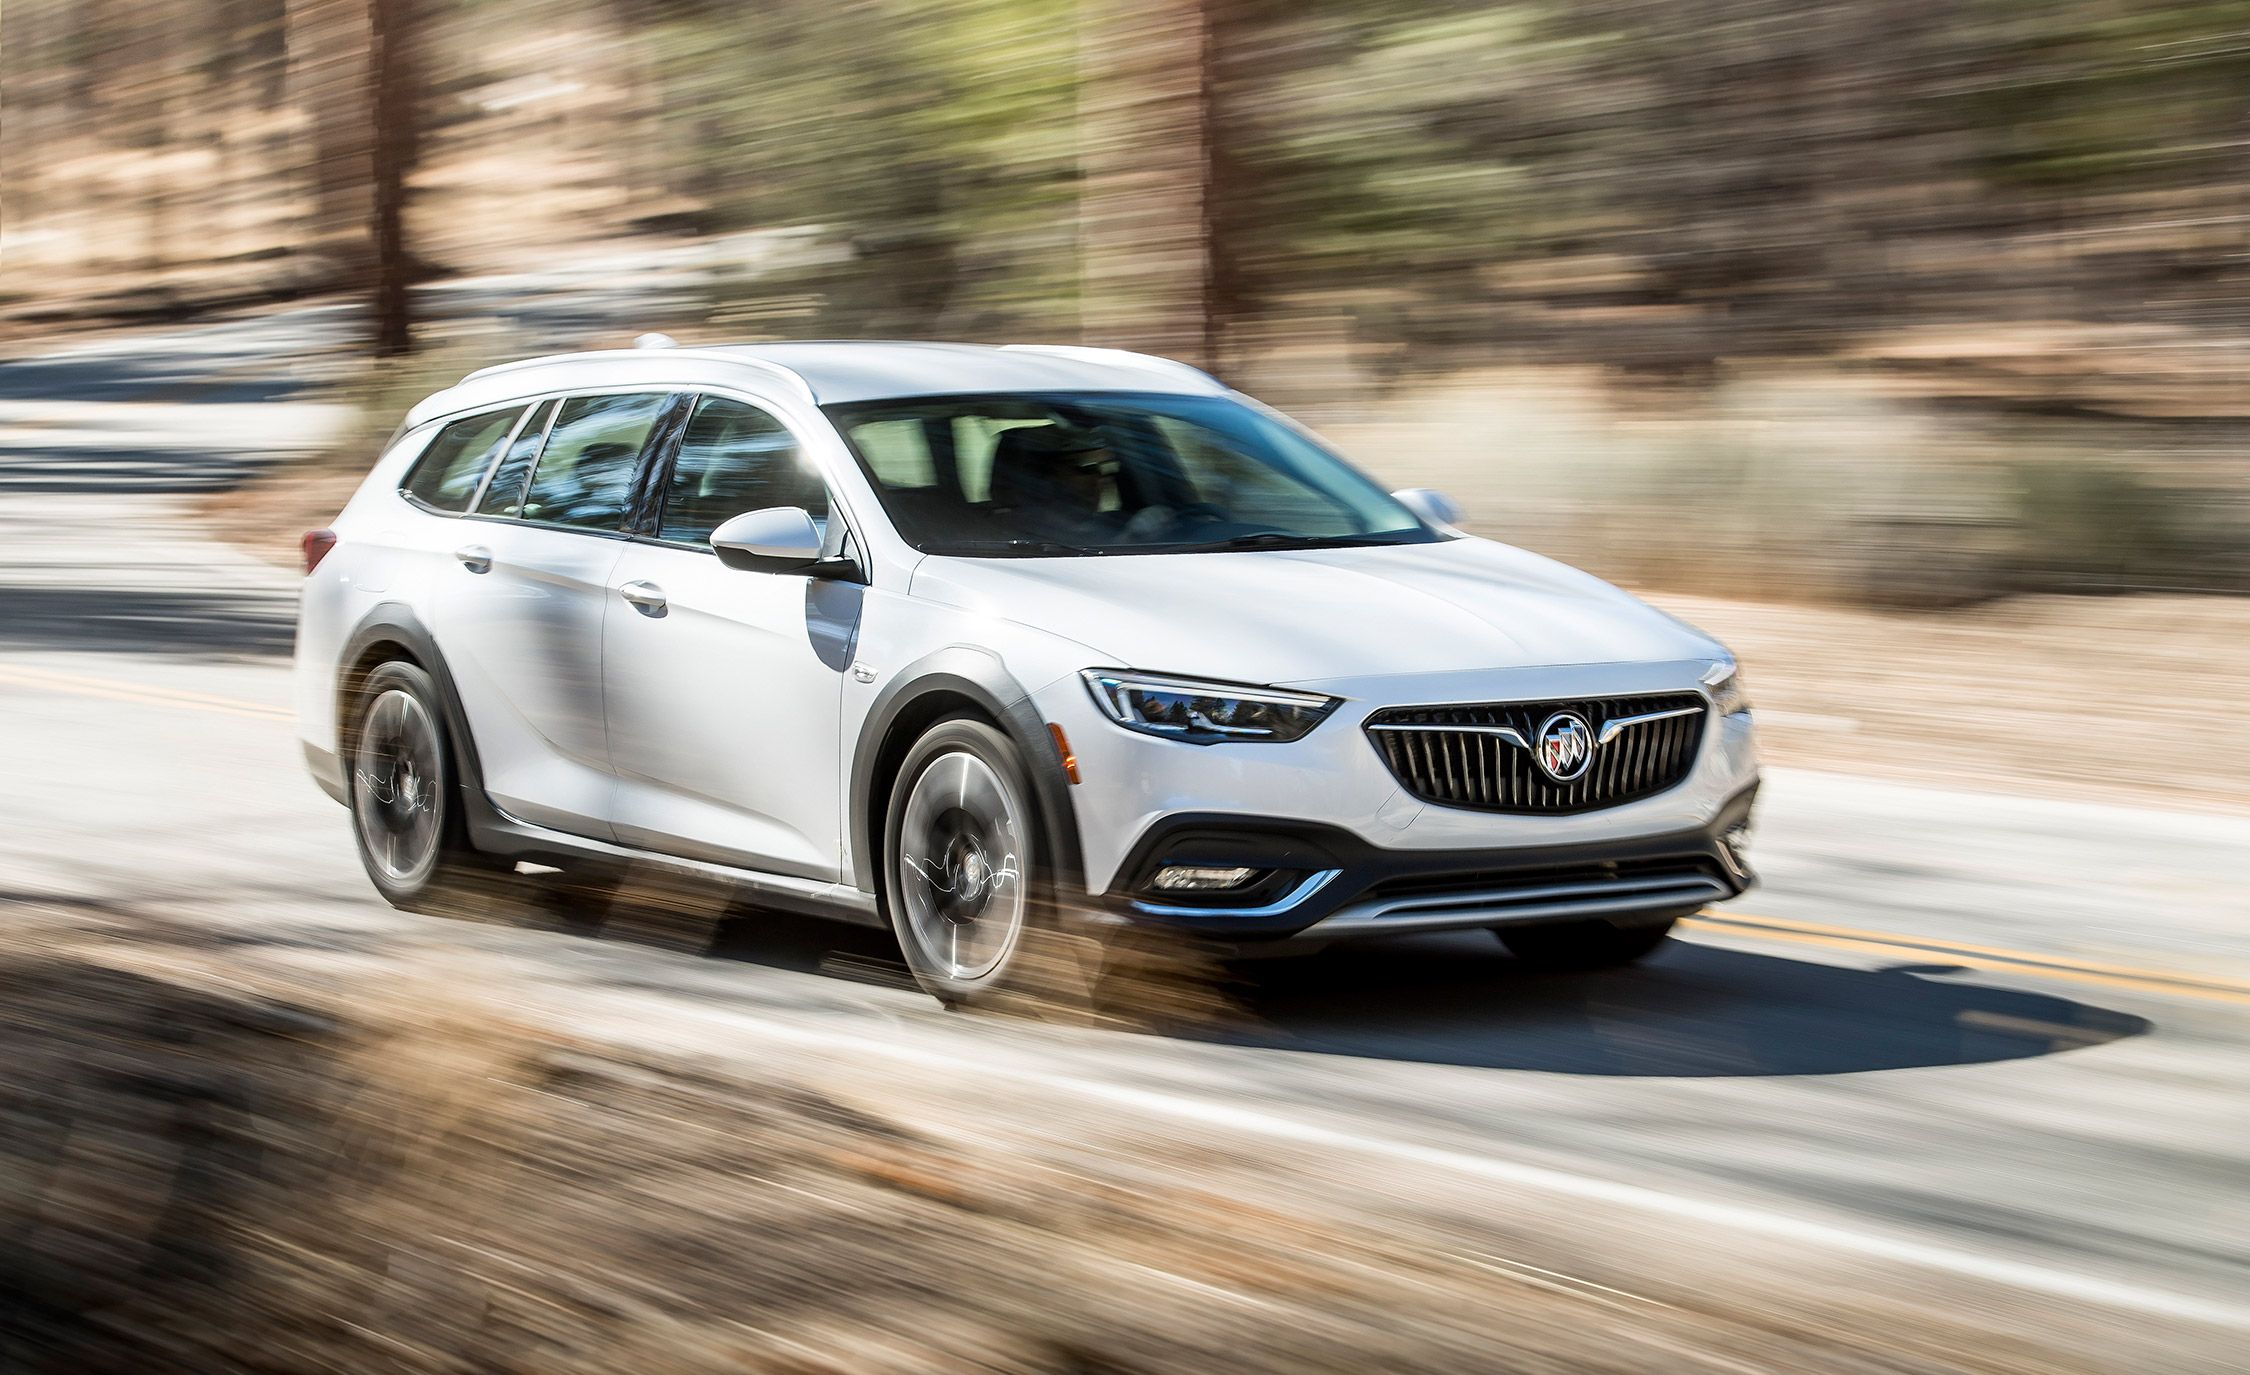 2018 Buick Regal Tourx Test | Review | Car And Driver 2021 Buick Regal Tourx Review, Specs, 0-60